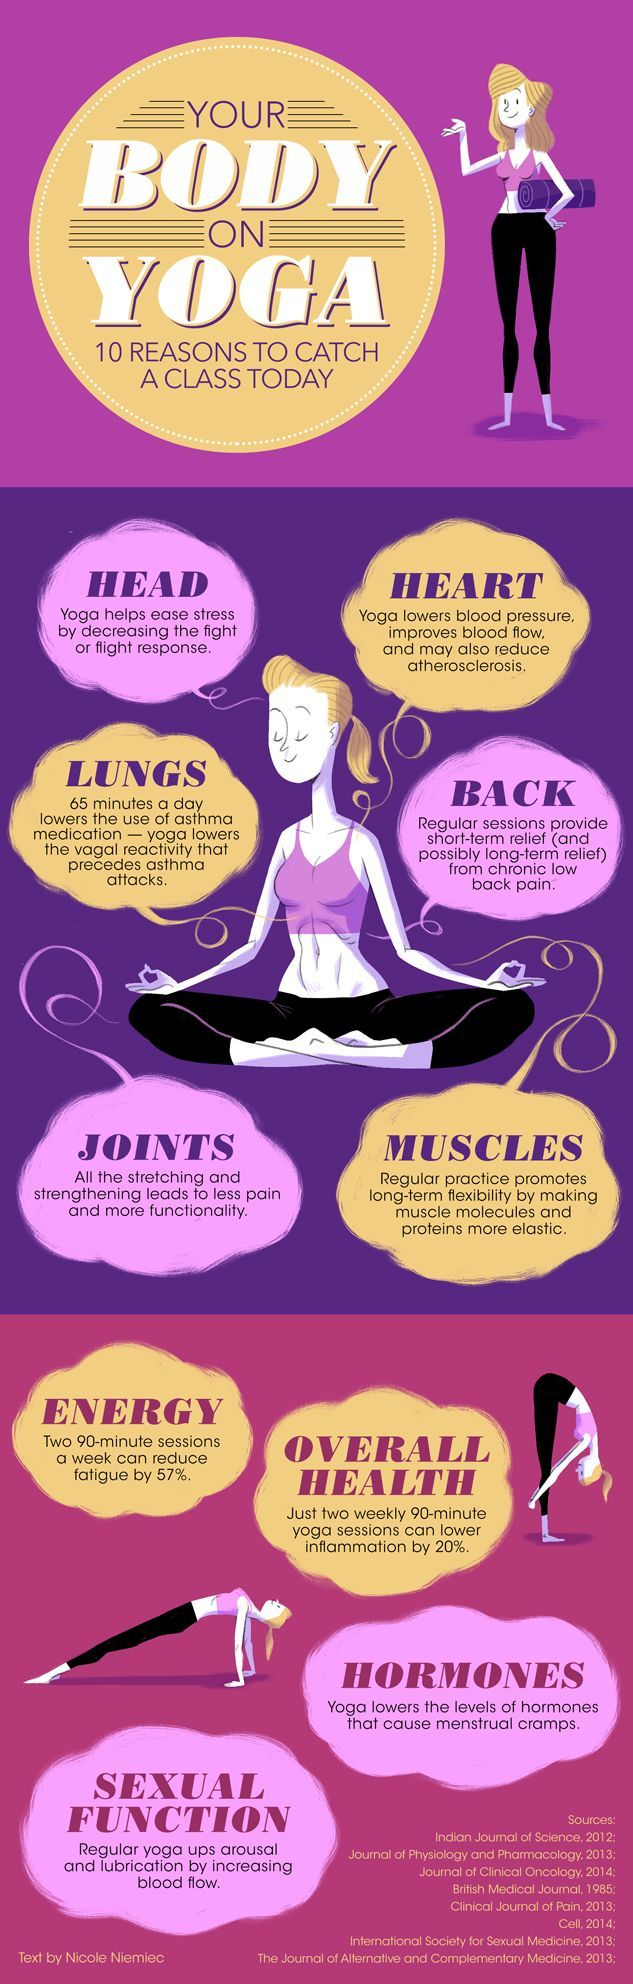 See It: Your Body On Yoga [Infographic] - Yoga for Beginners